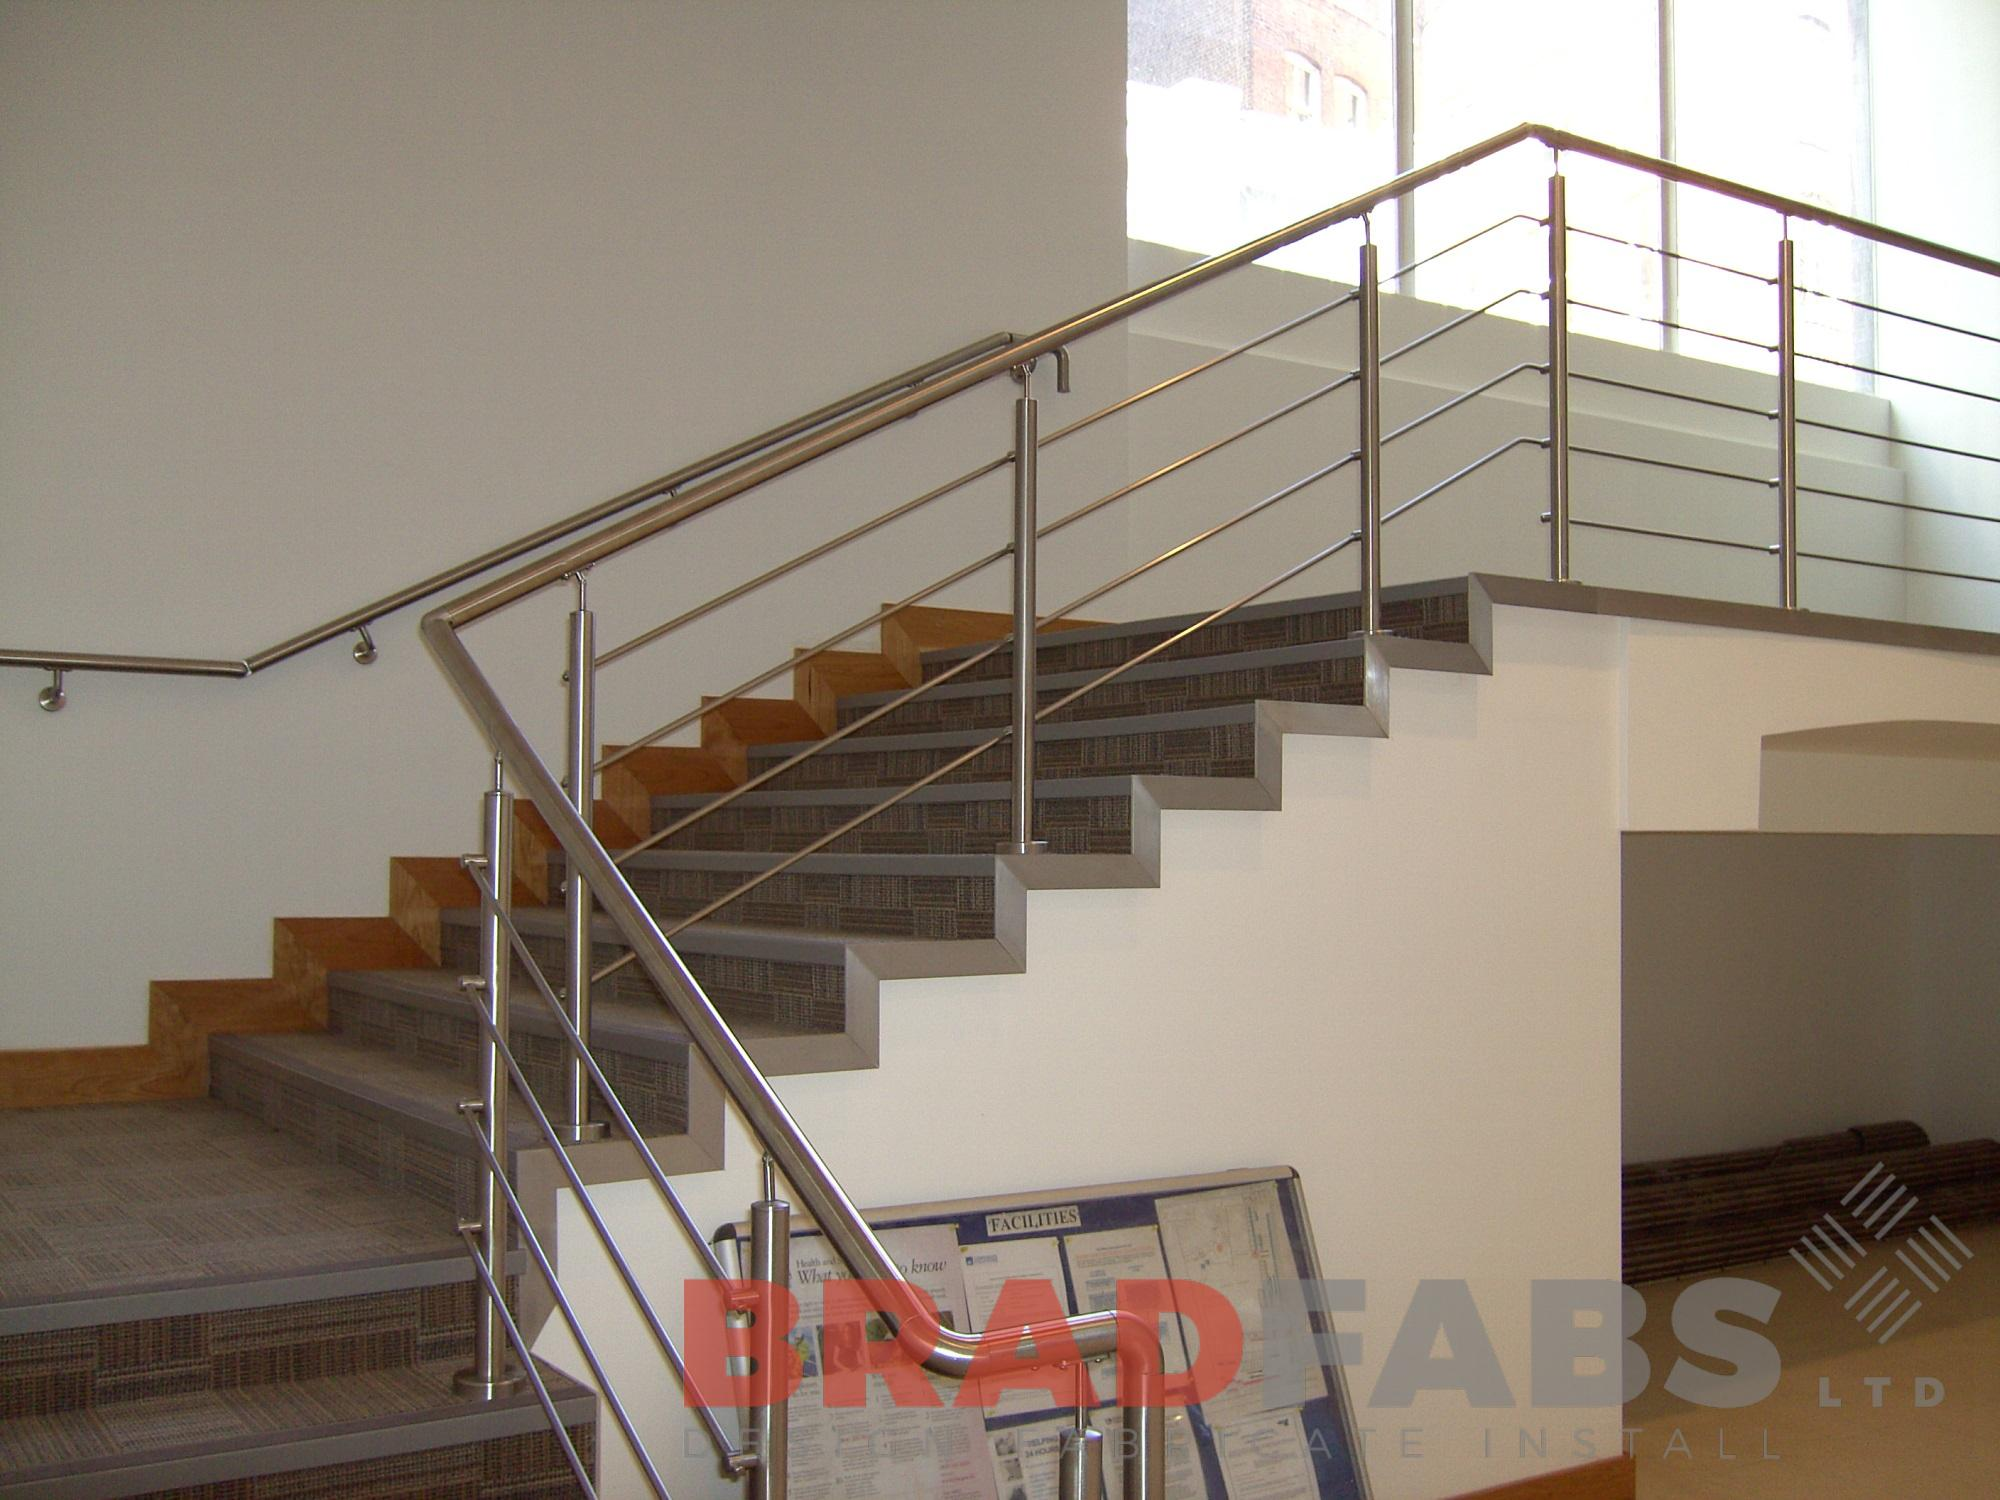 stainless stell horizontal balustrade in a commercial building